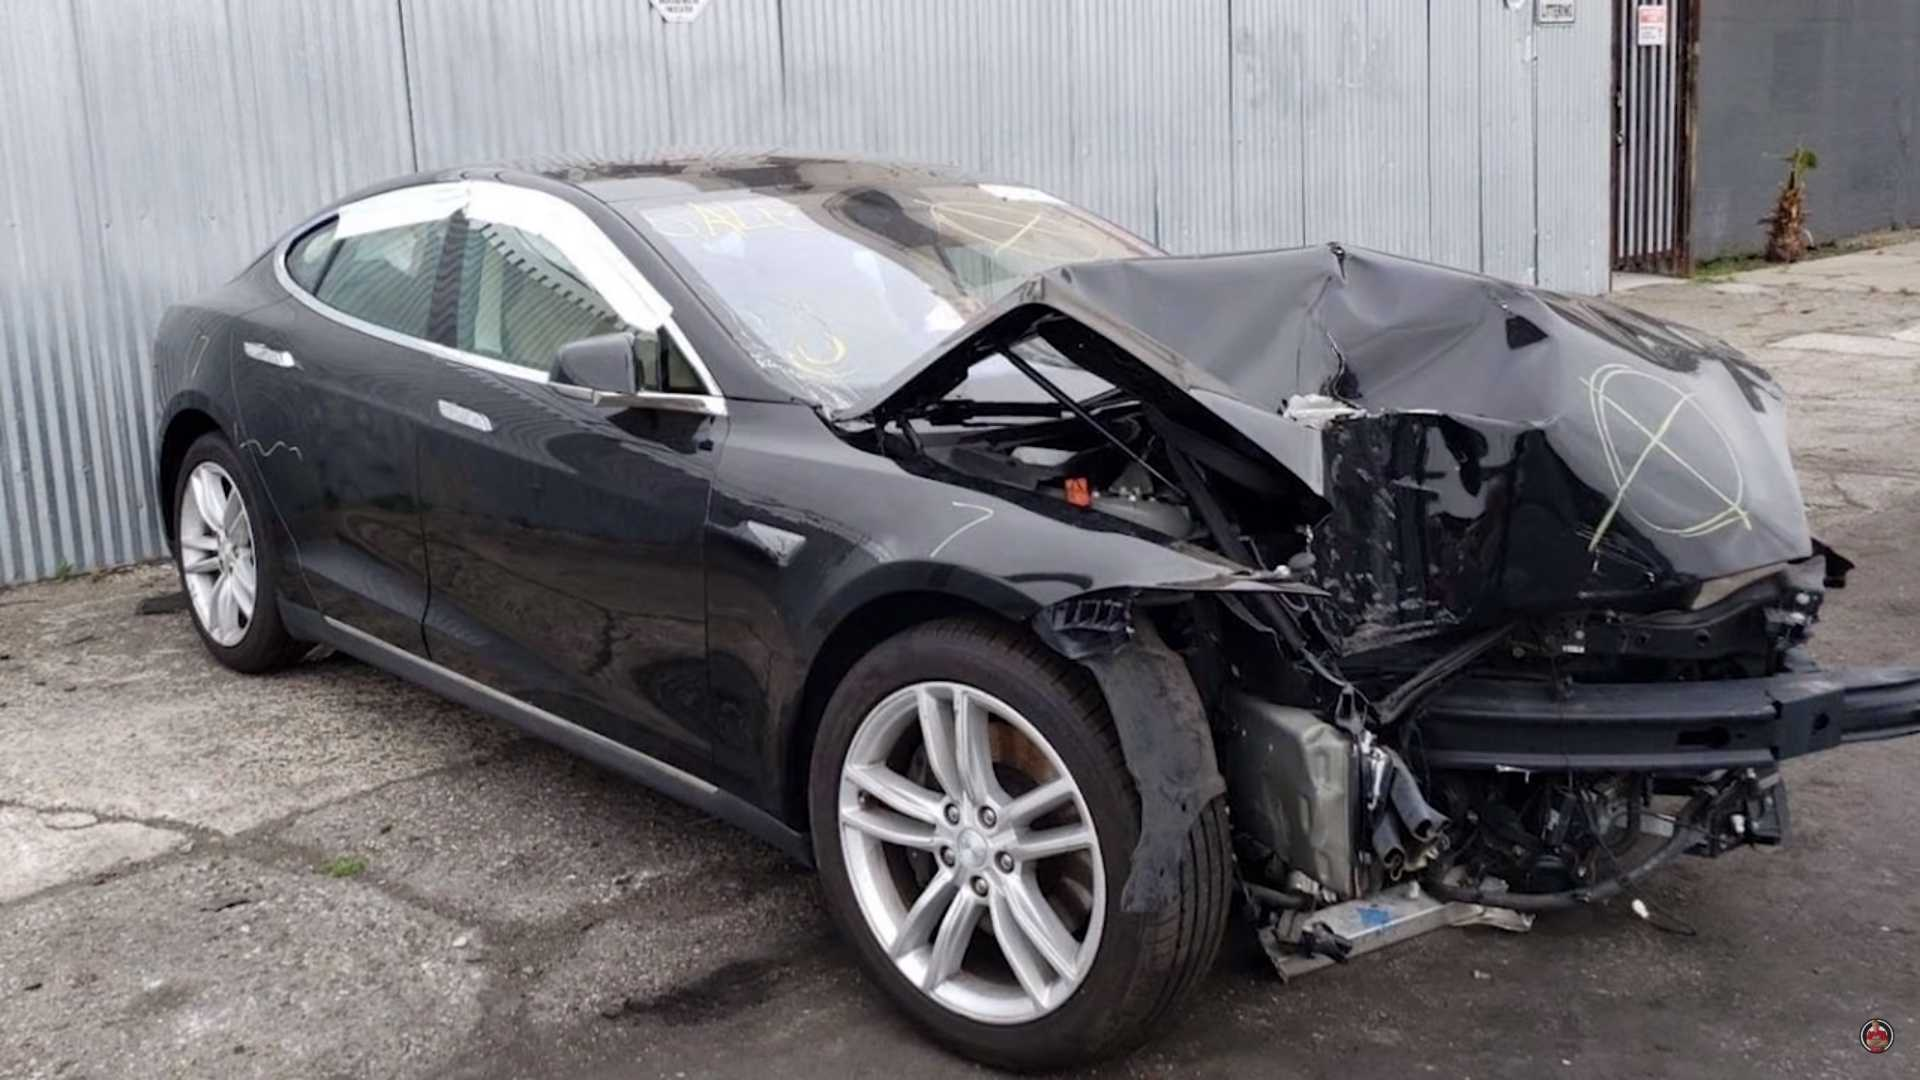 See This Heavily Damaged Tesla Model S